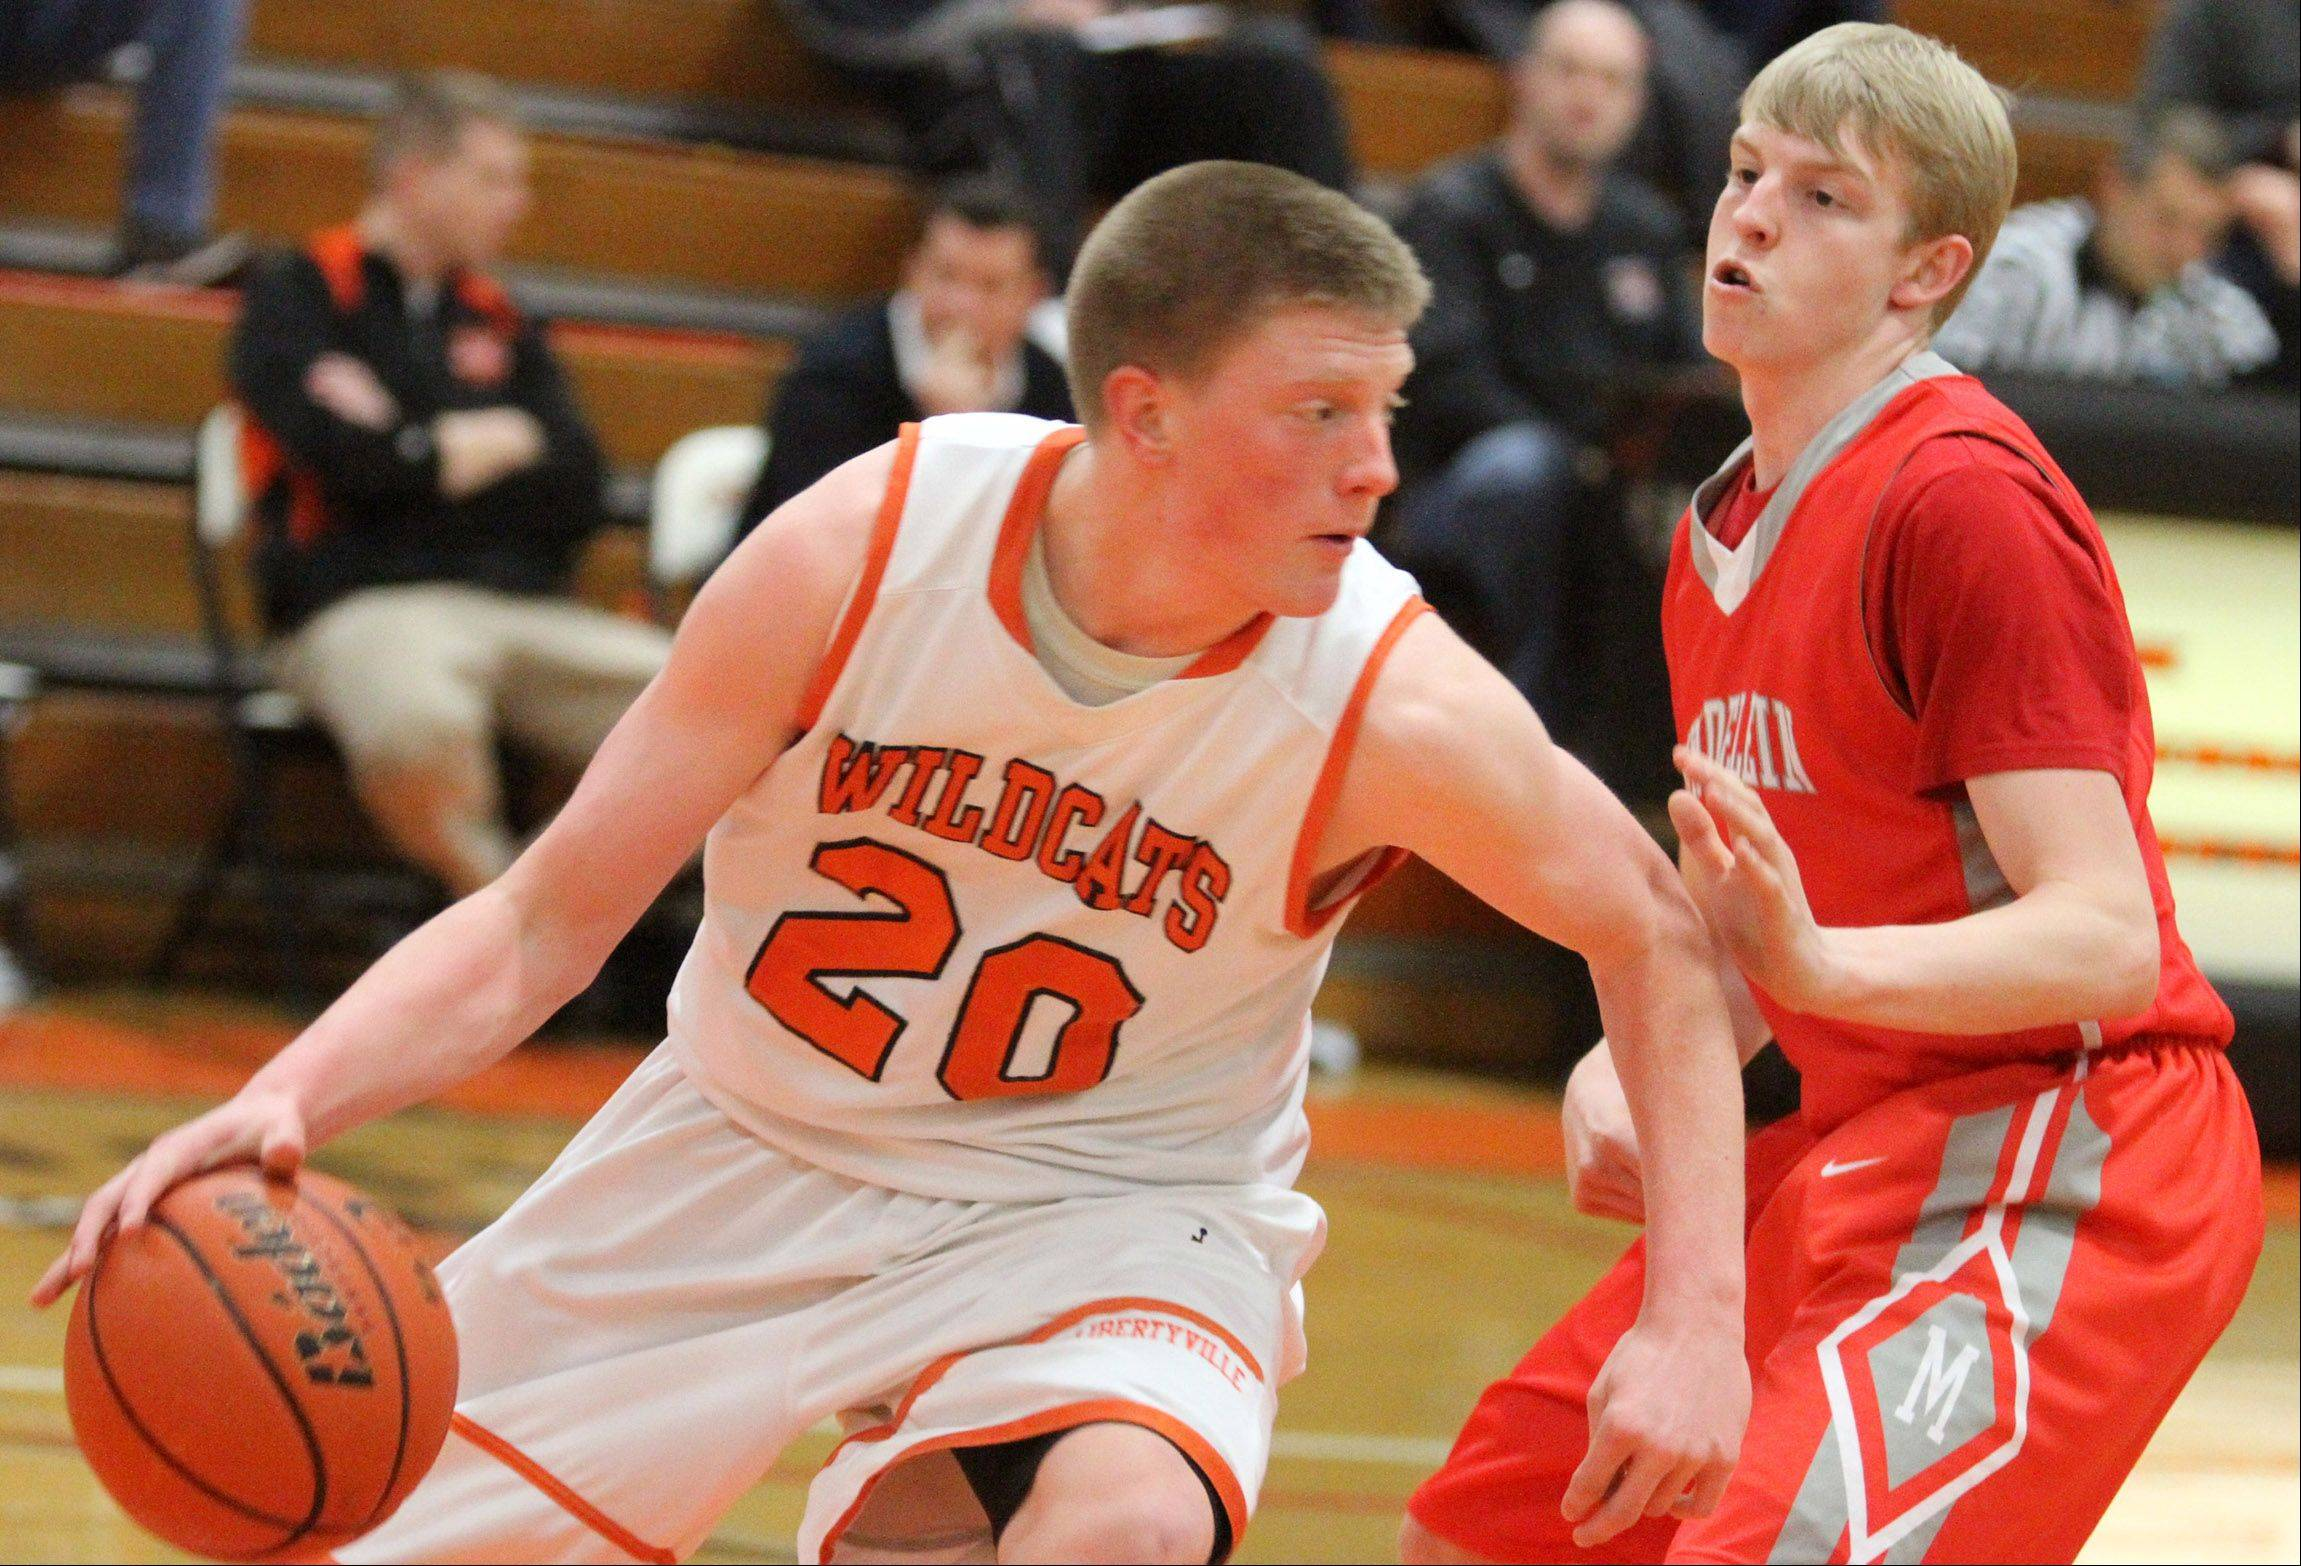 Libertyville guard Jack Lipp looks for running room after grabbing a defensive rebound against Mundelein at Libertyville in February.